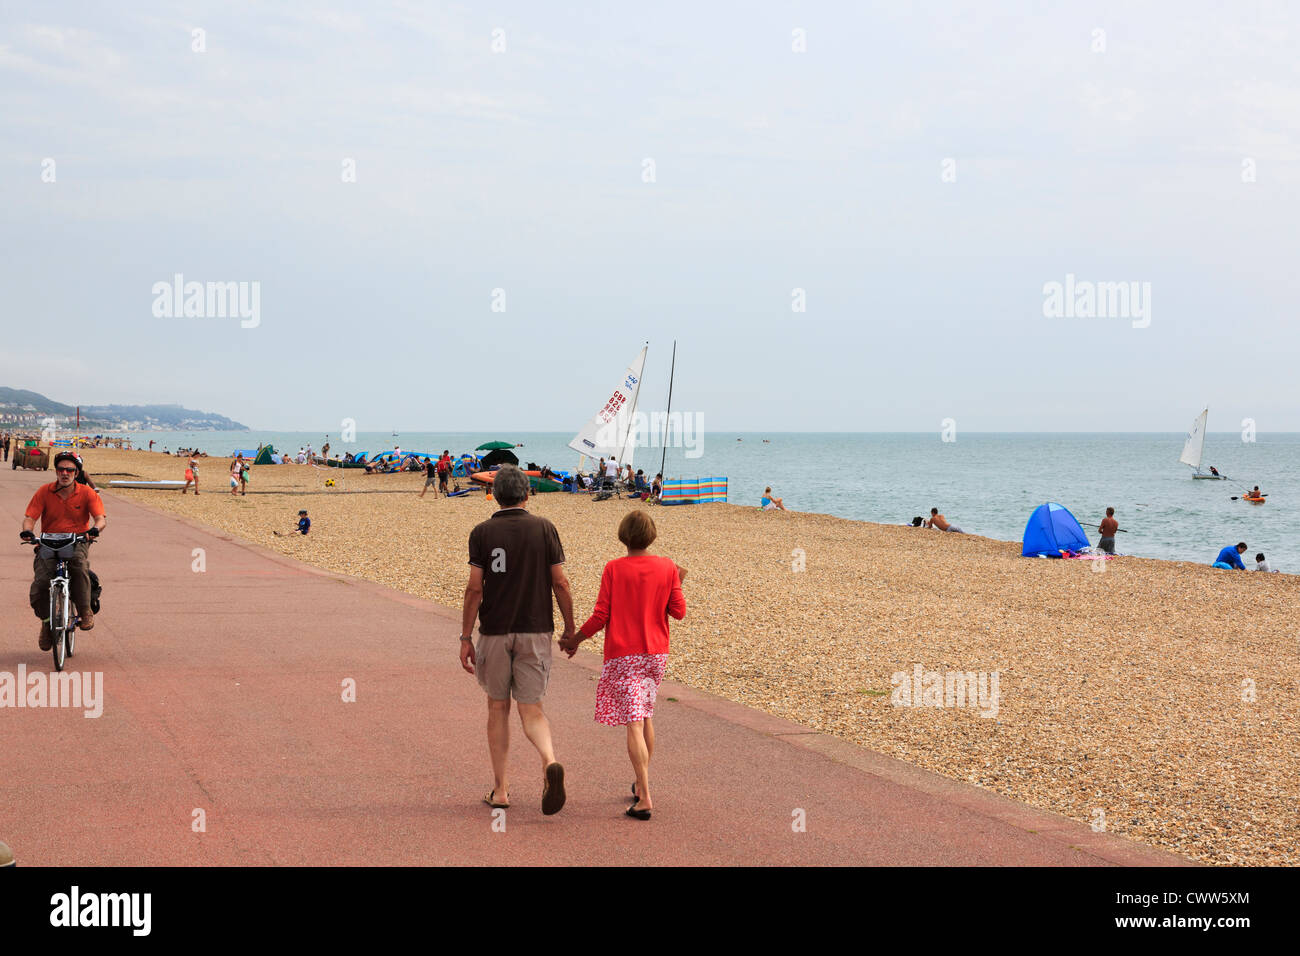 People walking on seafront promenade beside the sea and pebble beach on the south coast at Hythe, Kent, England, - Stock Image